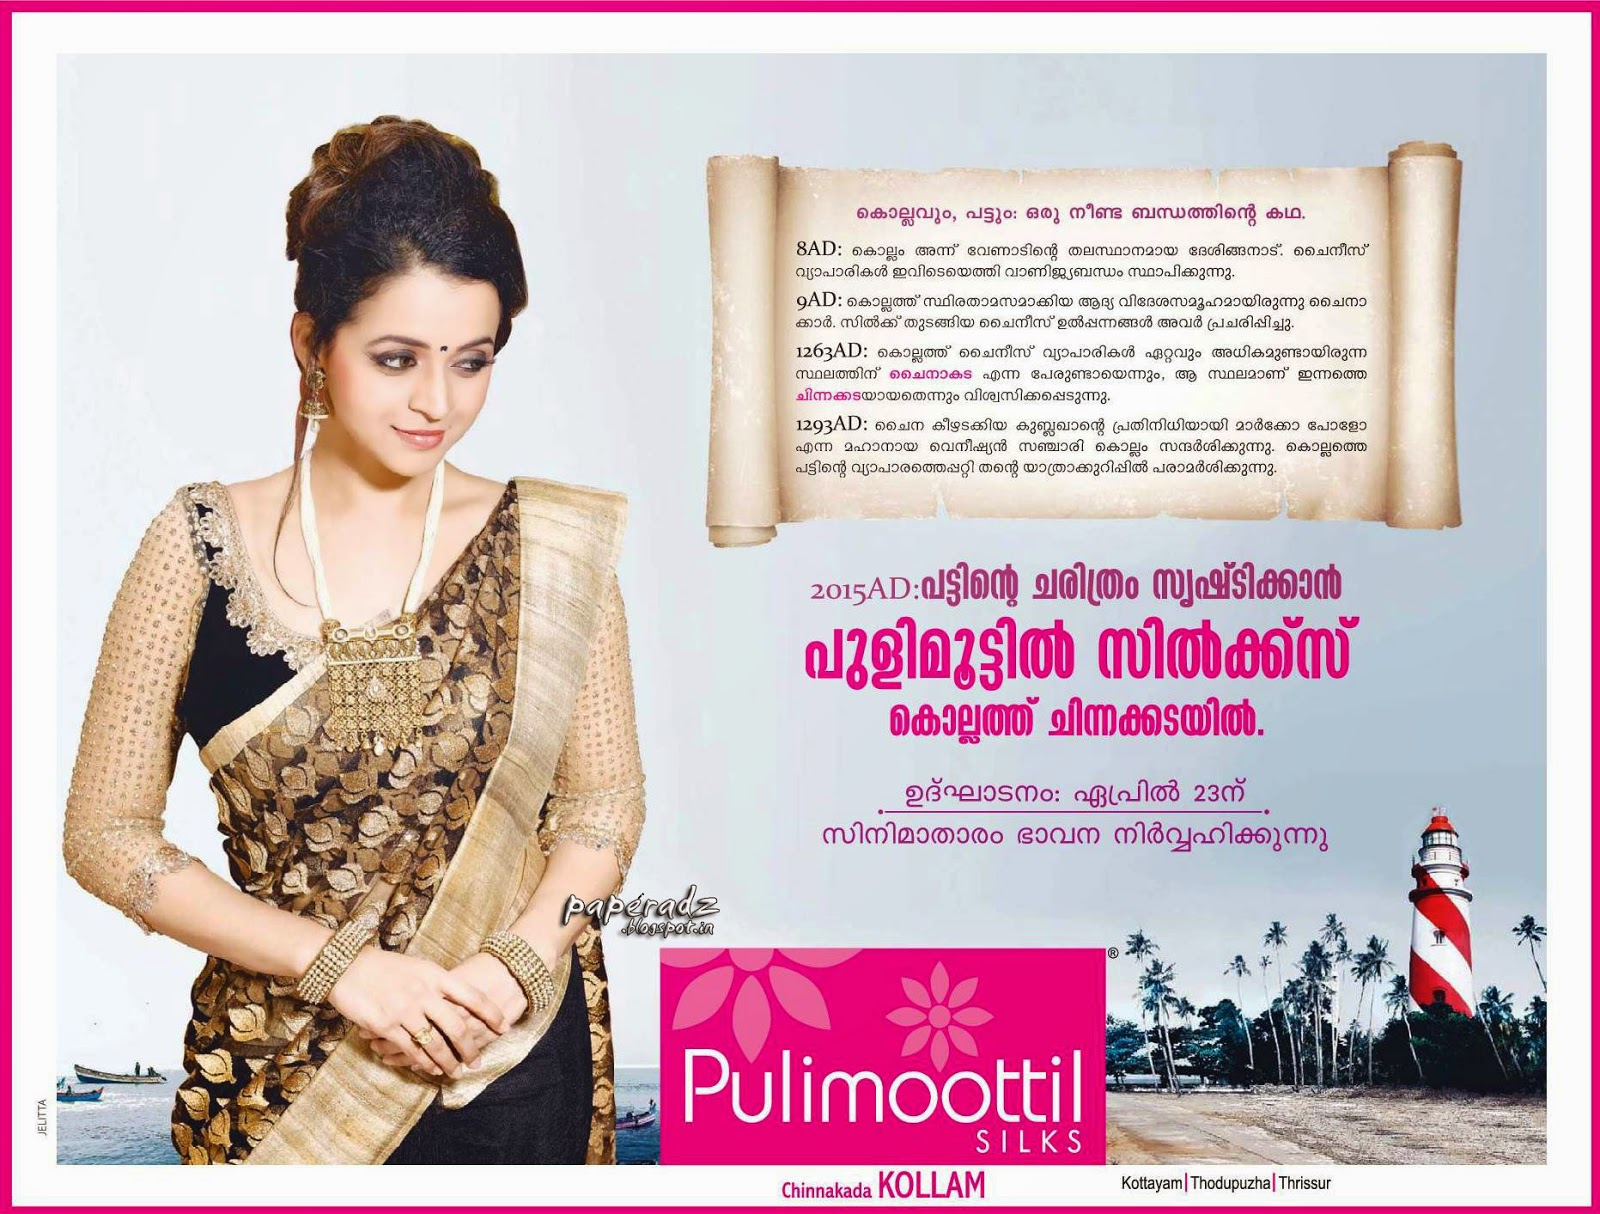 Pulimoottil silks kollam new showroom inauguration bhavana ads bhavana in kollam pulimoottil silks inauguration photos altavistaventures Image collections